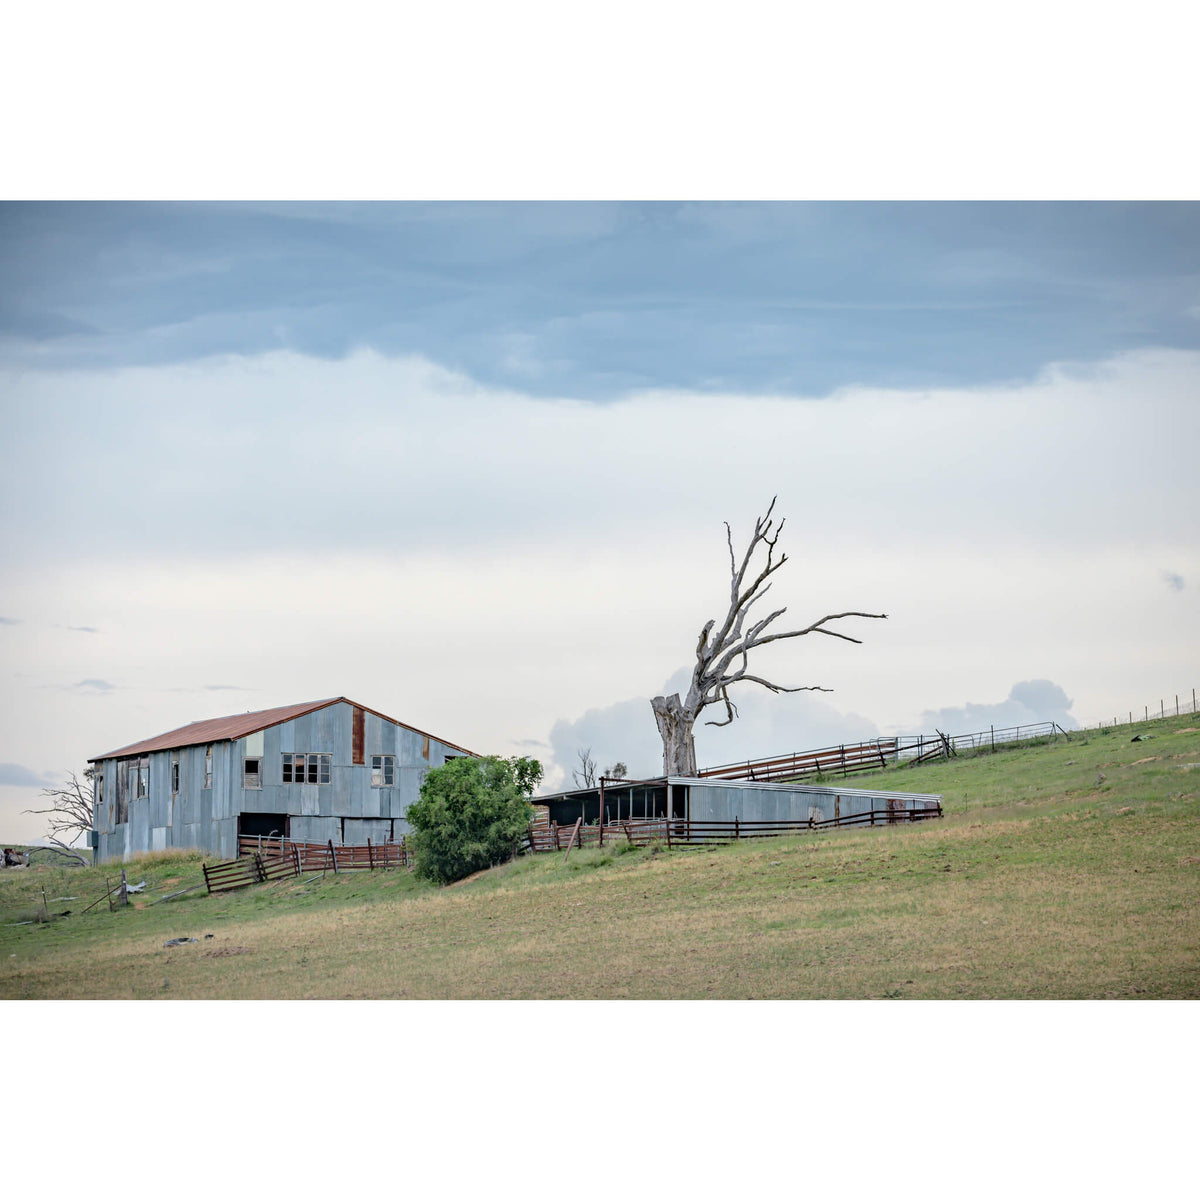 Jimenbuen Woolshed | The Woolshed Fine Art Print - Lost Collective Shop